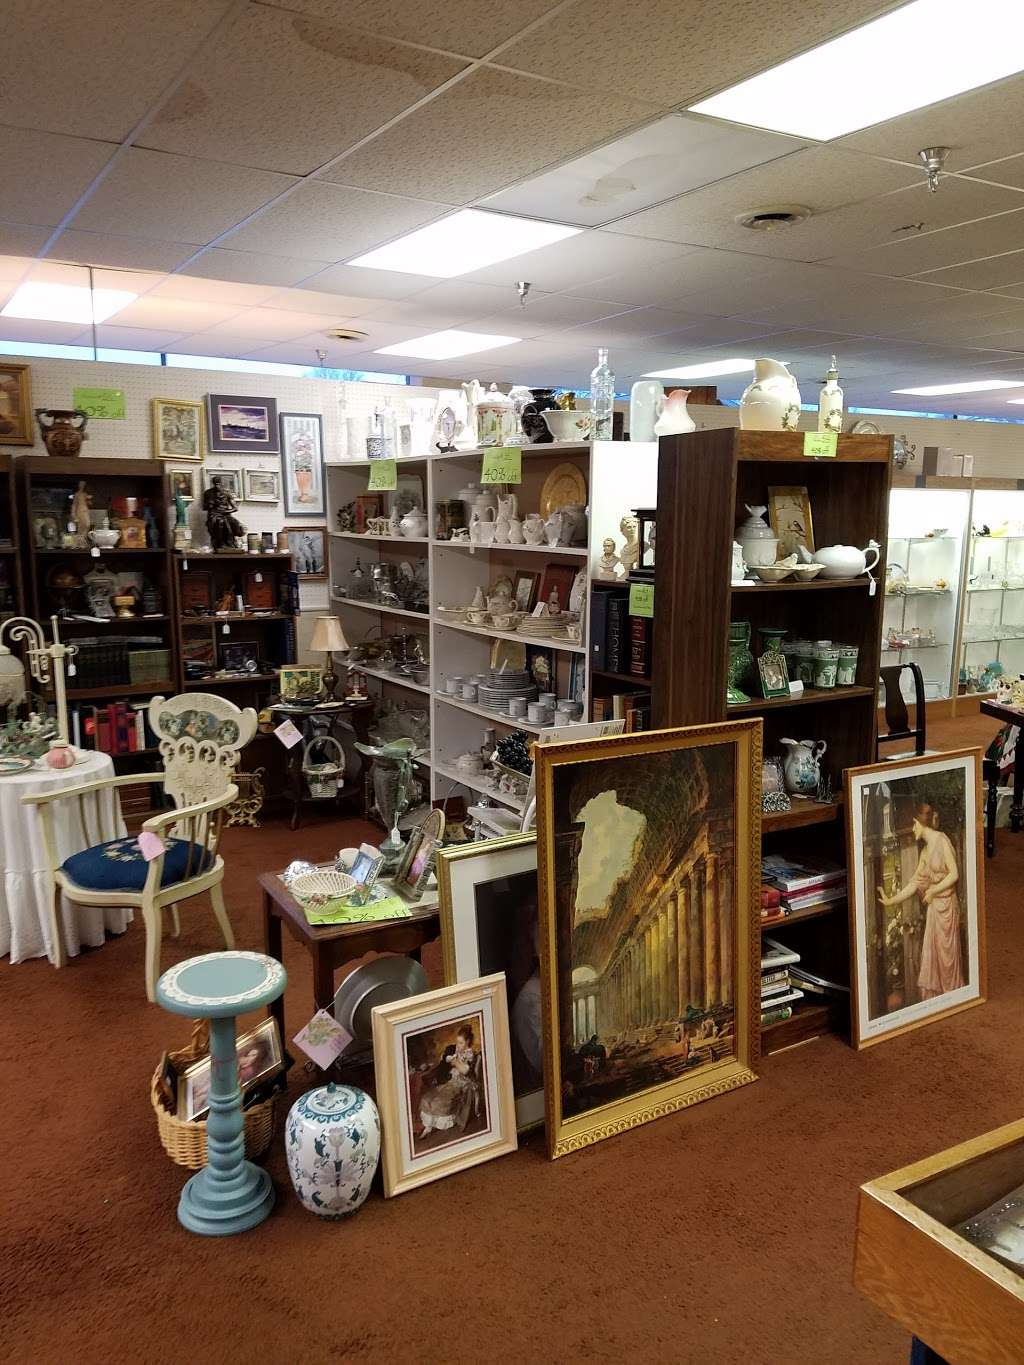 Yesterdays Treasures Antique Mall - jewelry store  | Photo 1 of 10 | Address: 700 Broadway, Chesterton, IN 46304, USA | Phone: (219) 926-2268